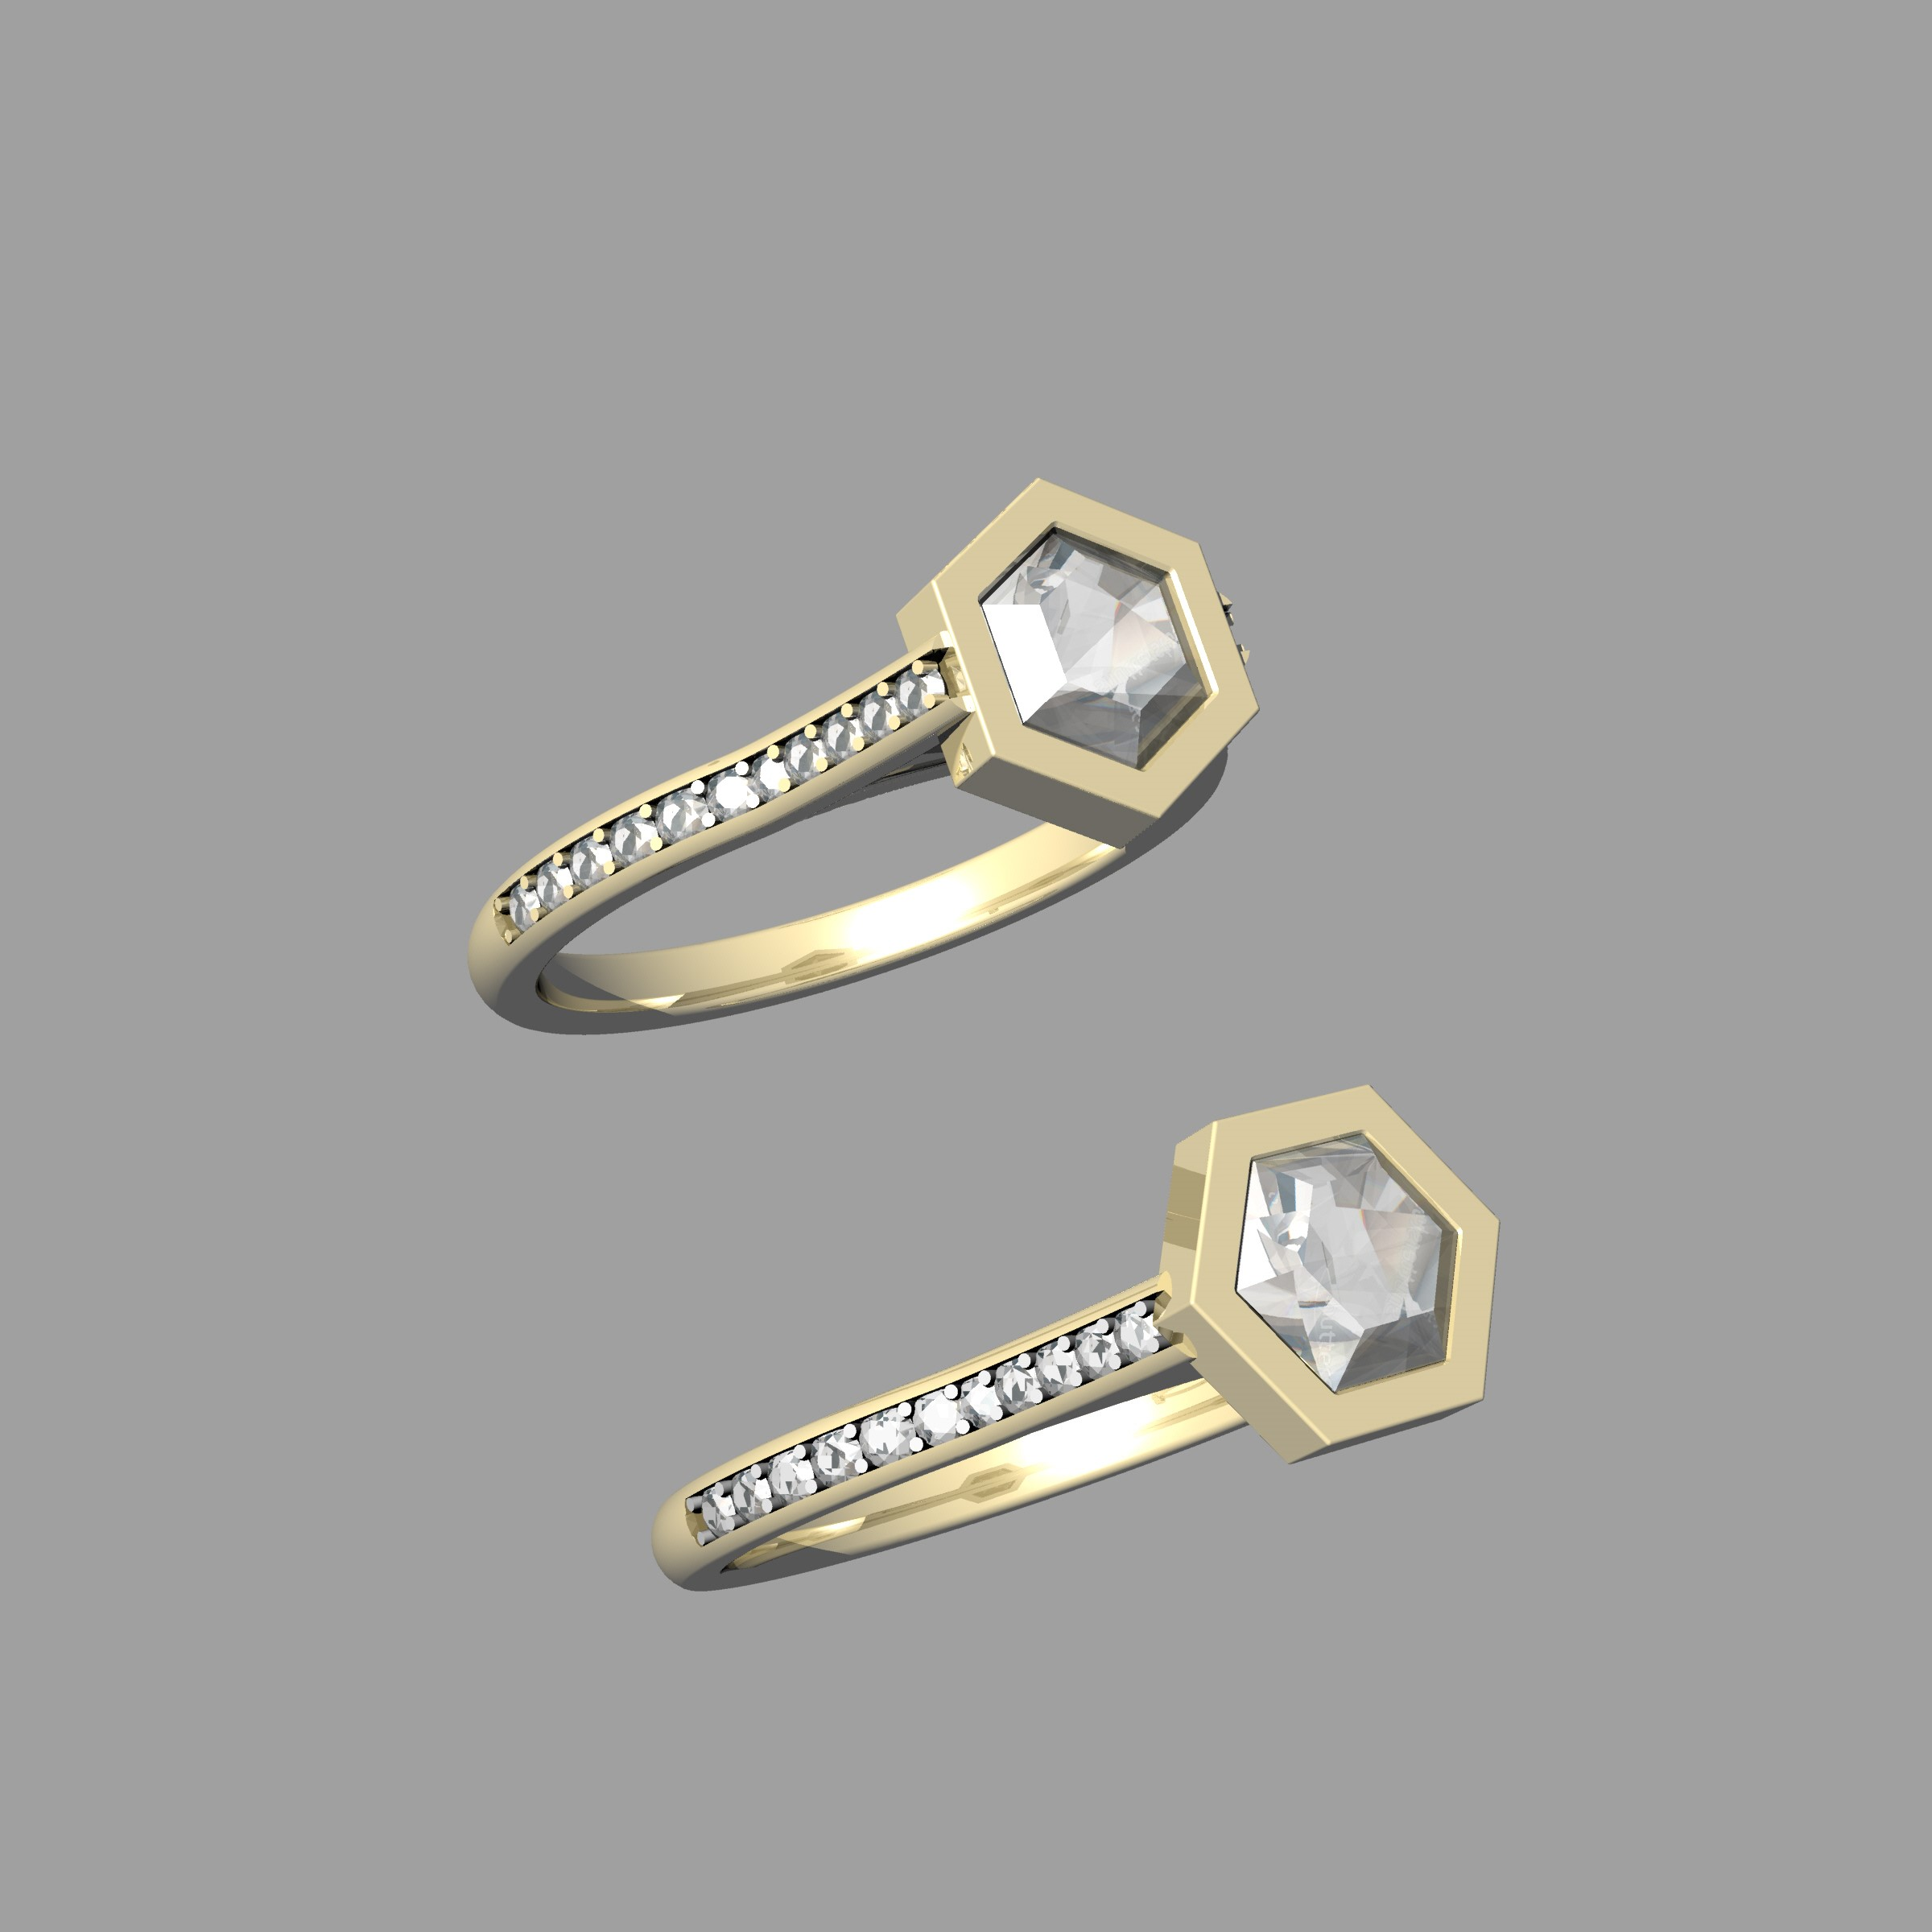 3d design of yellow gold hexagon single stone ring.jpg